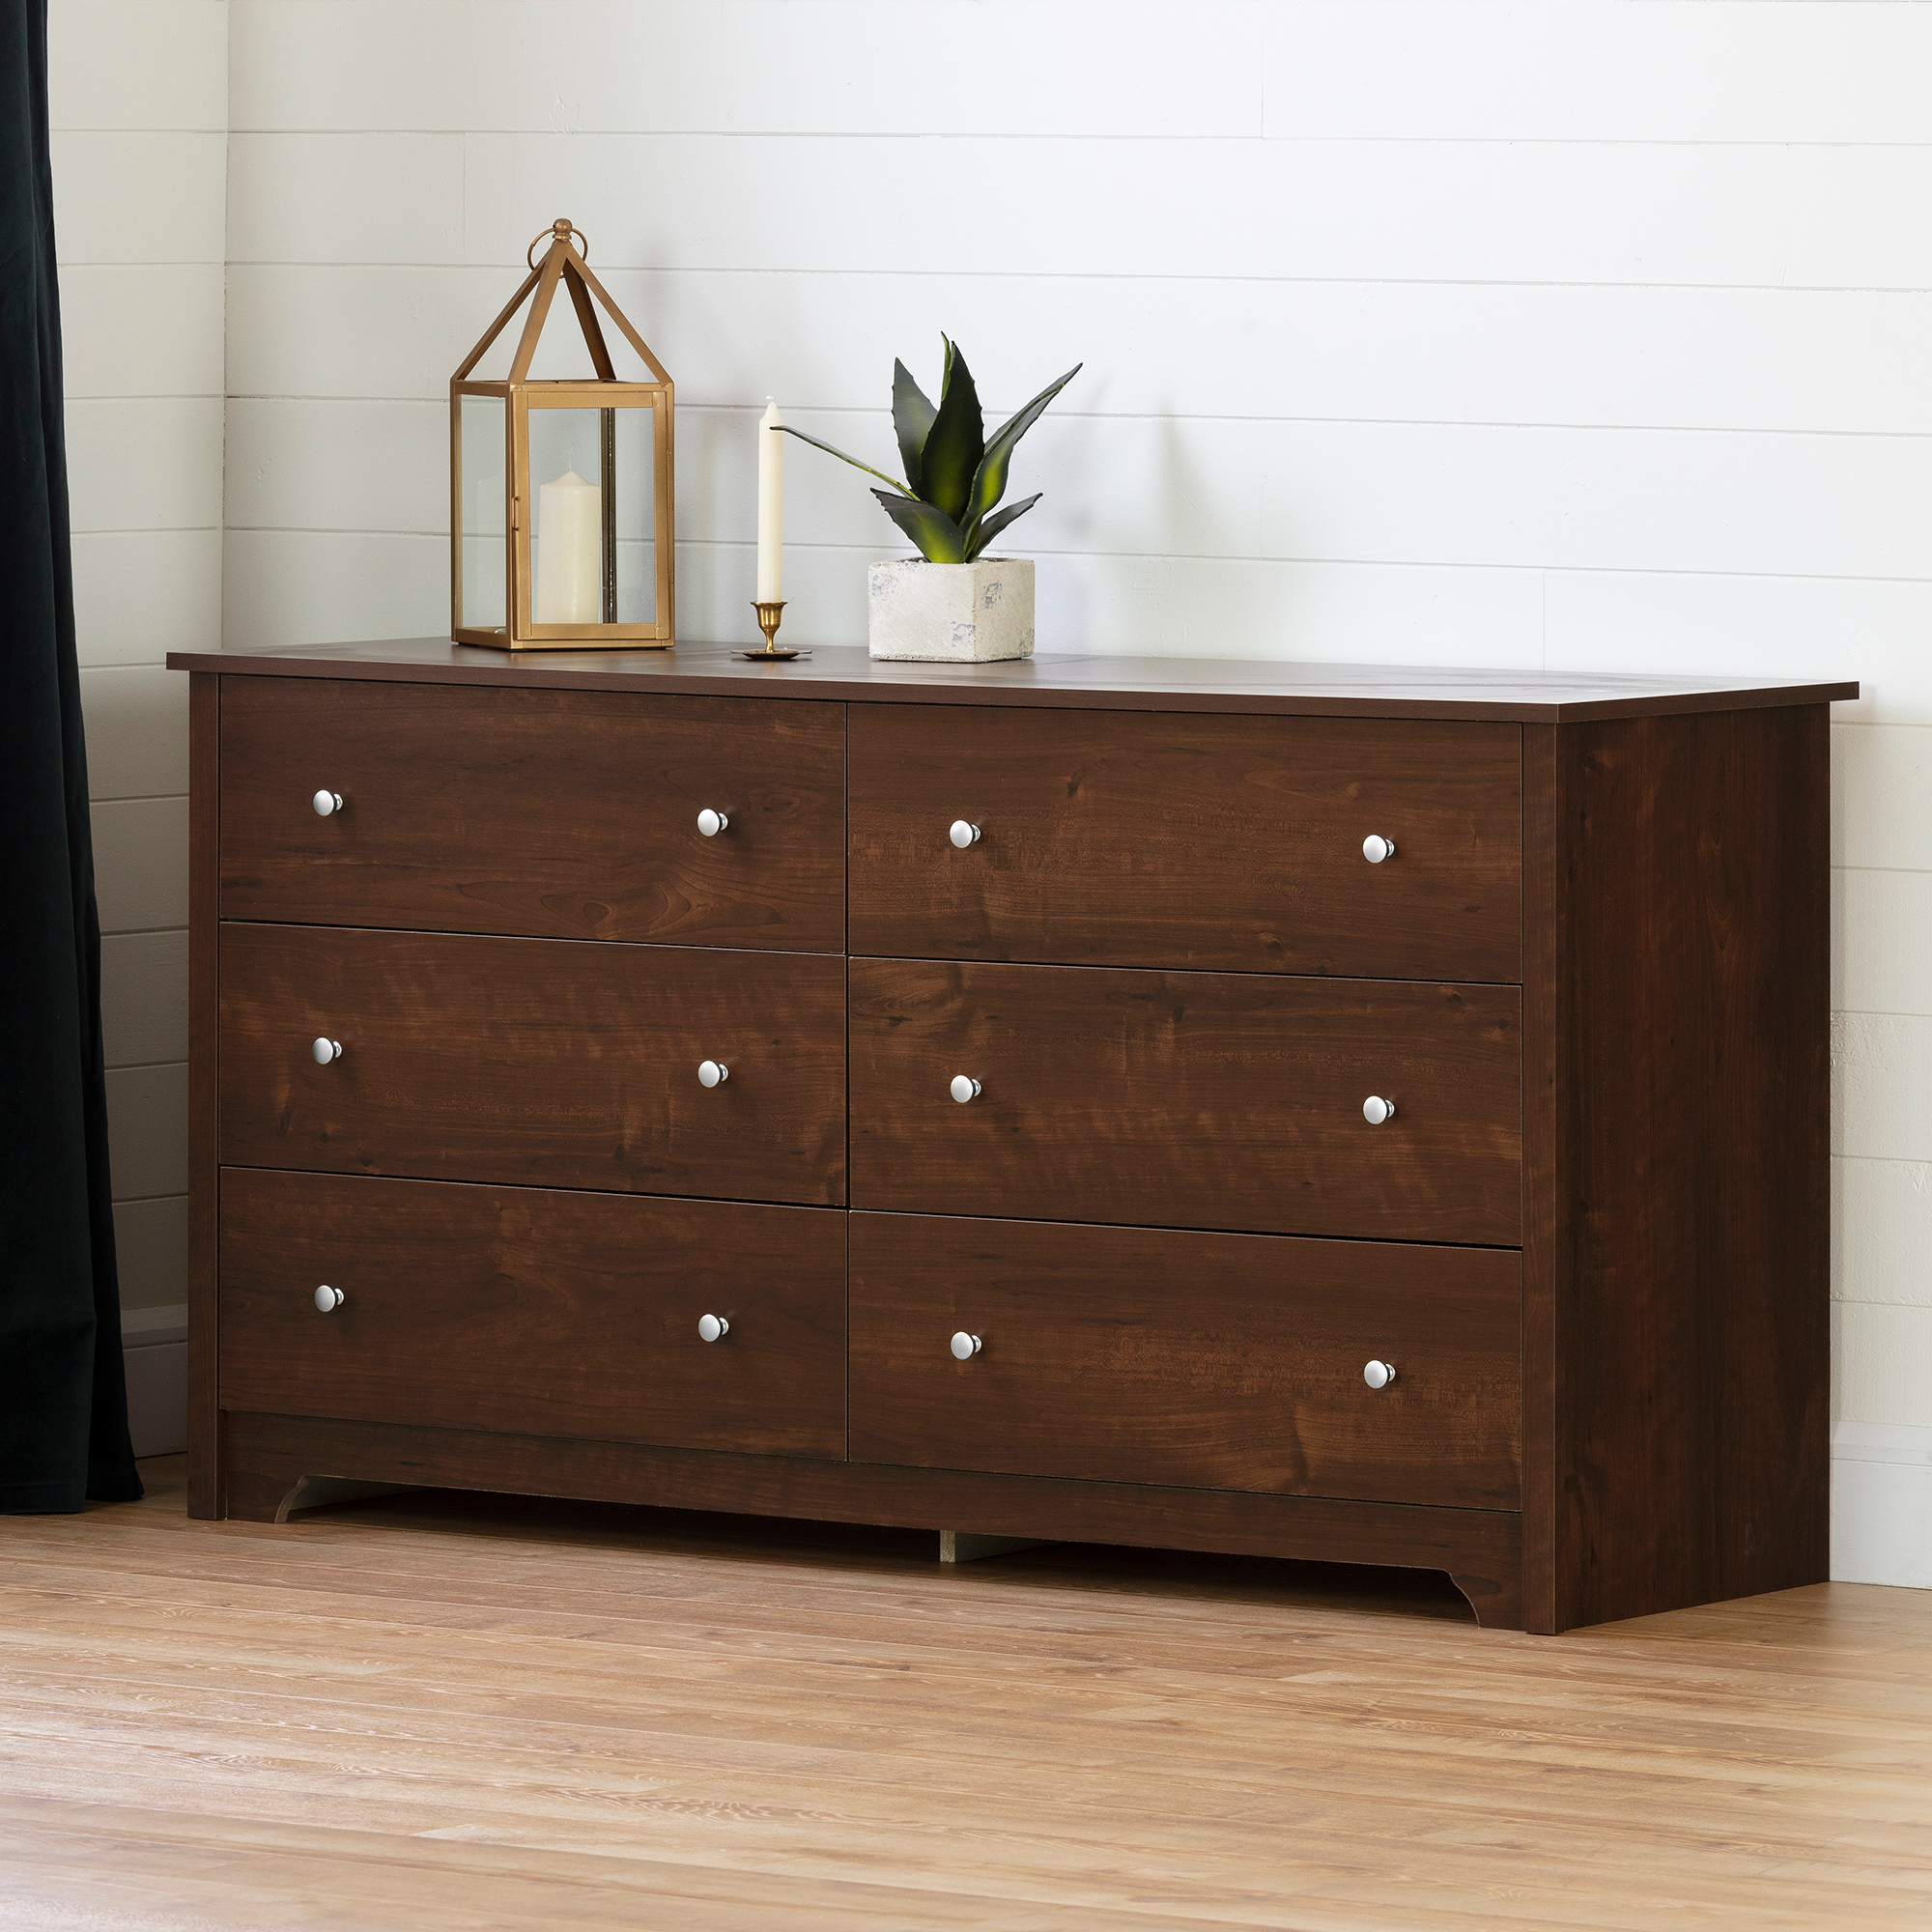 South Shore Concord 5 Drawer Chest in Somptuous Cherry Finish